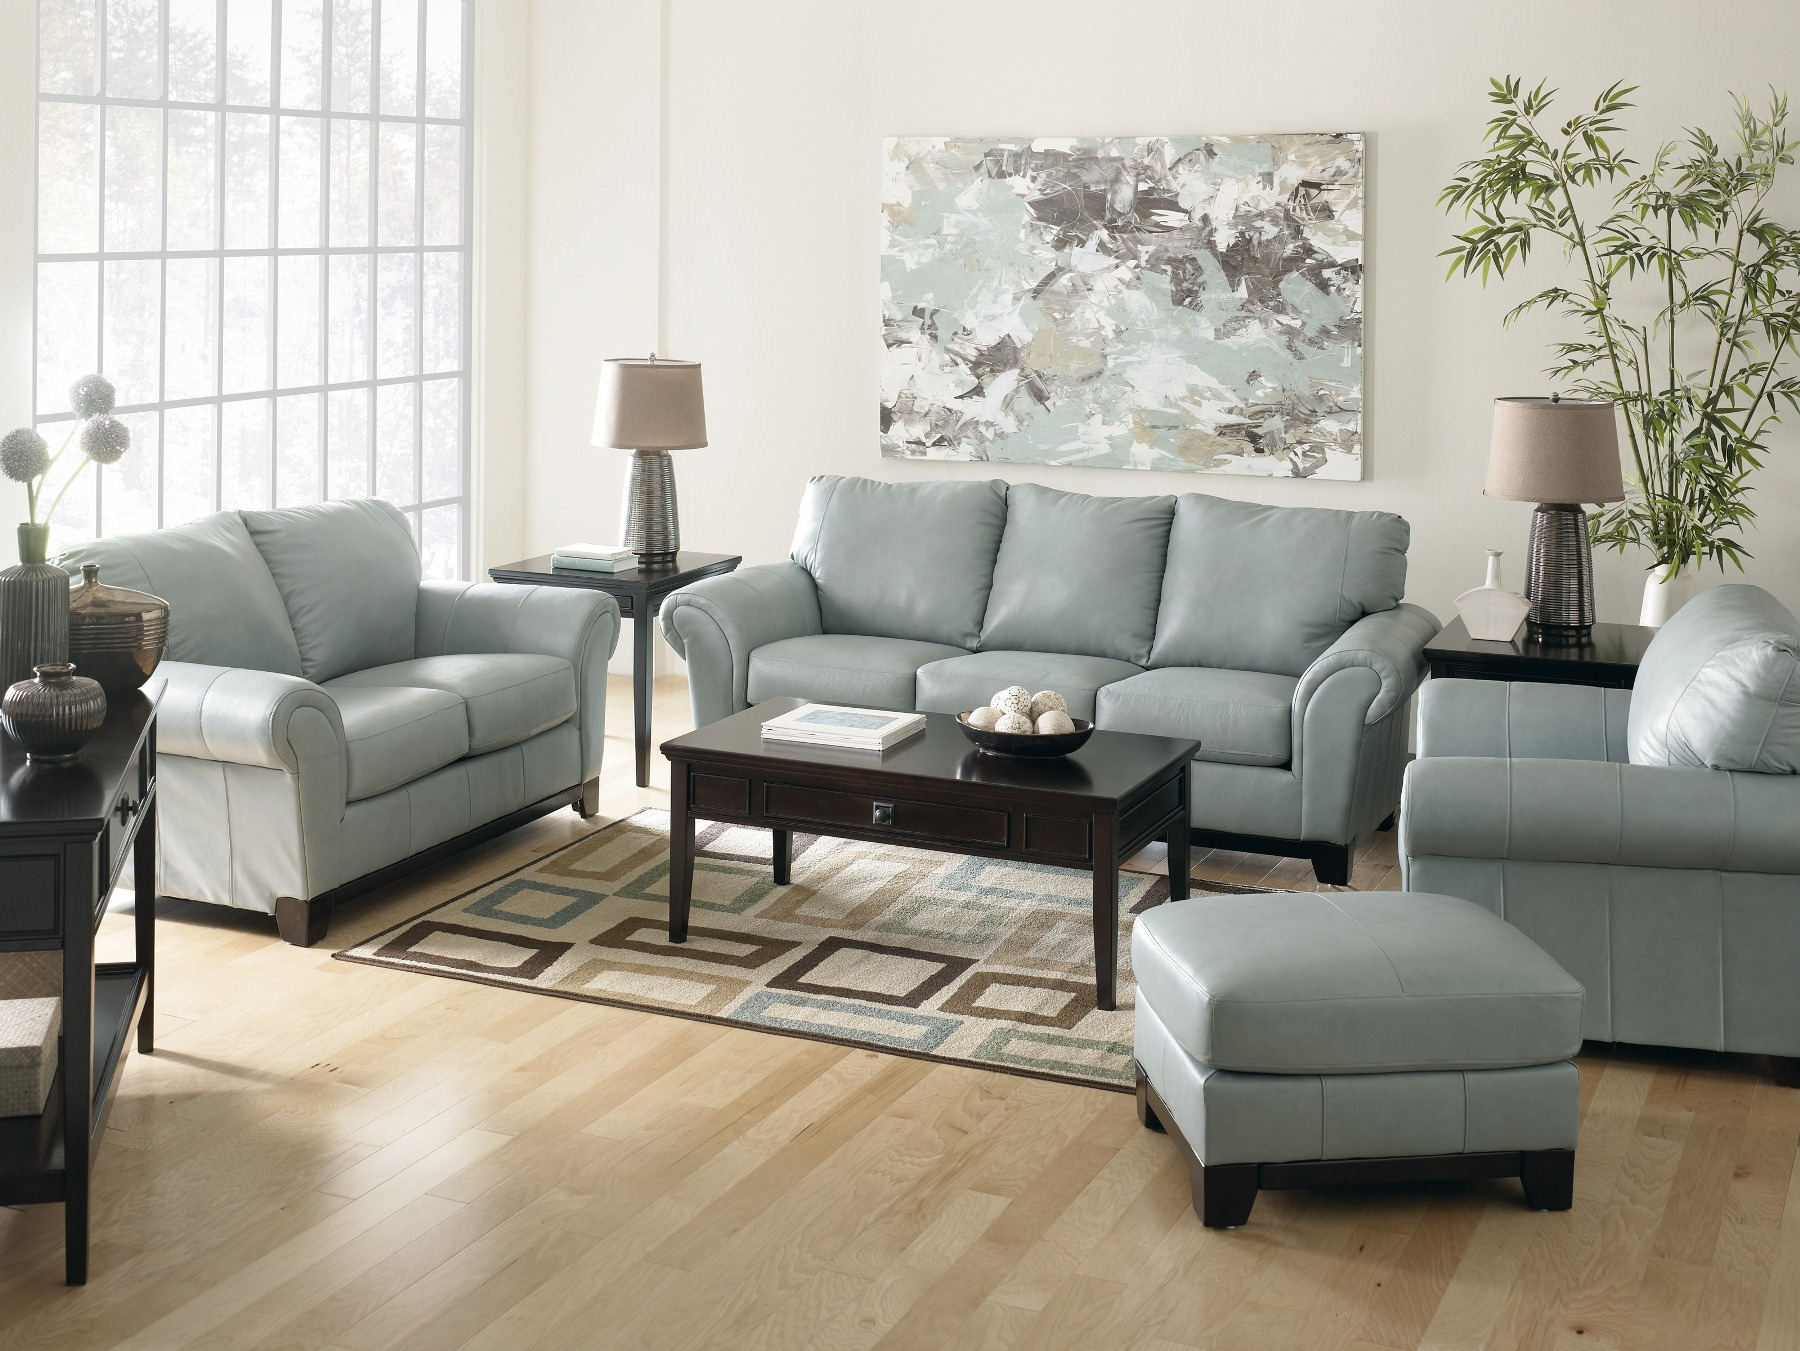 Perfect Light Blue Sofa Set 95 Sofa Room Ideas with Light Blue